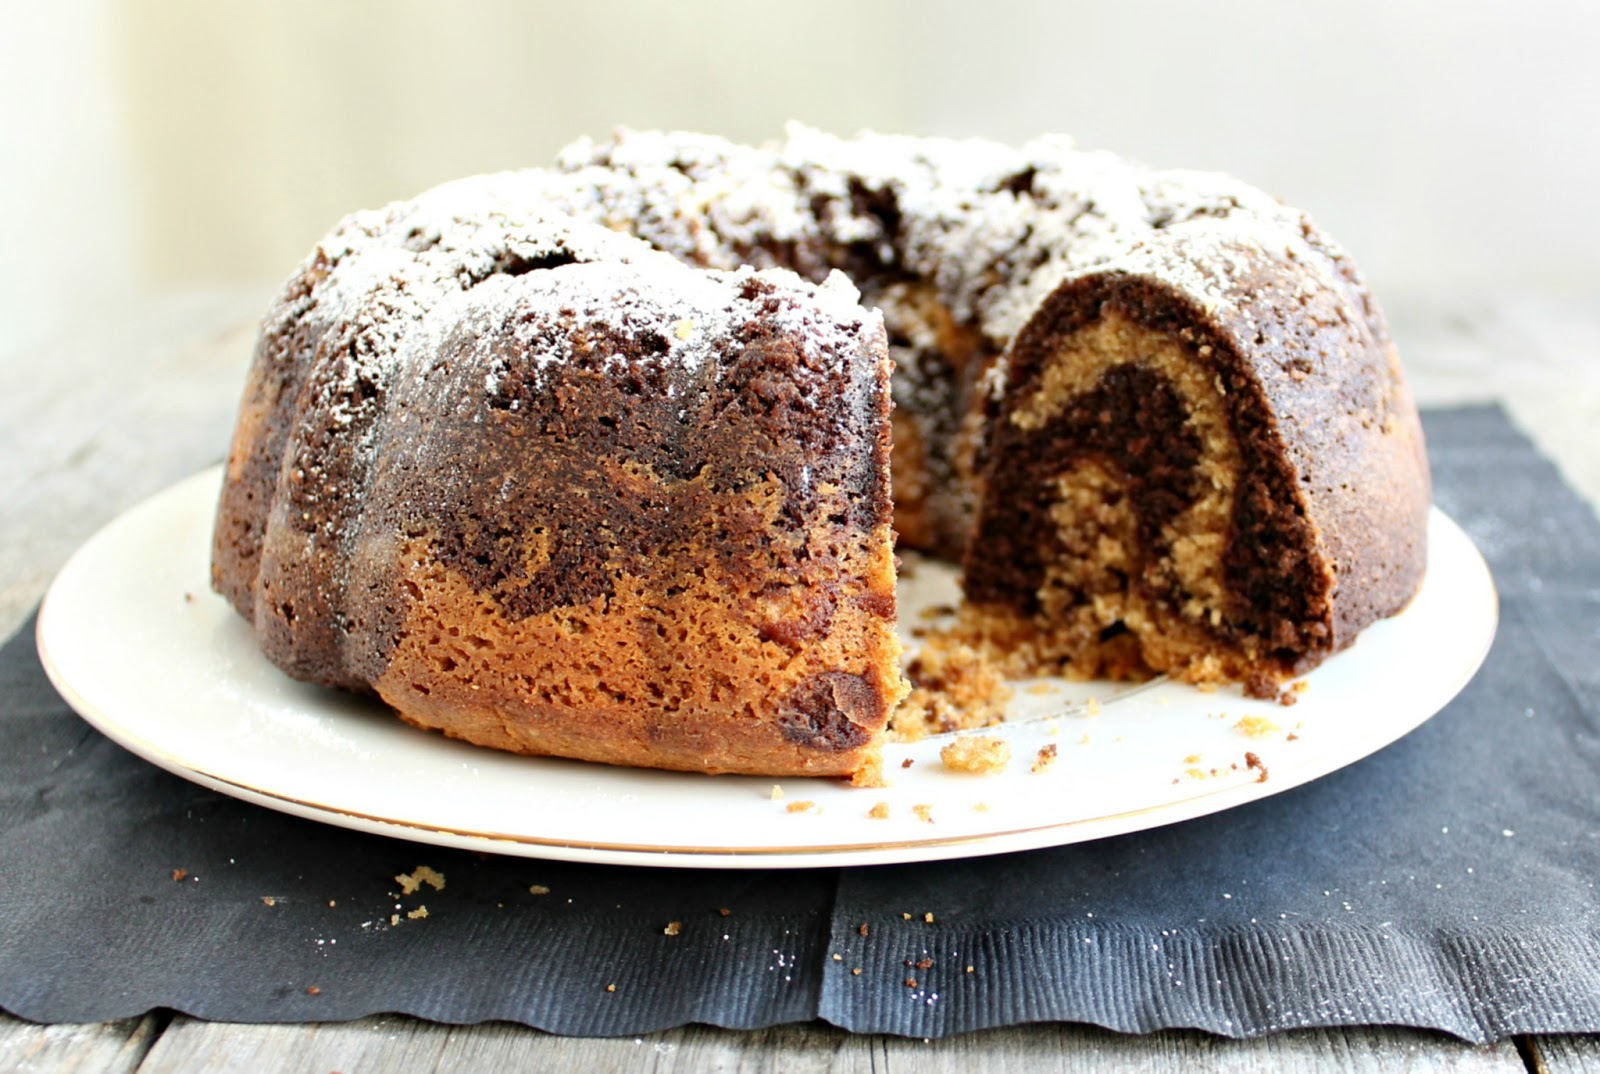 ... complete peanut buttery deliciousness of this properly swirled cake